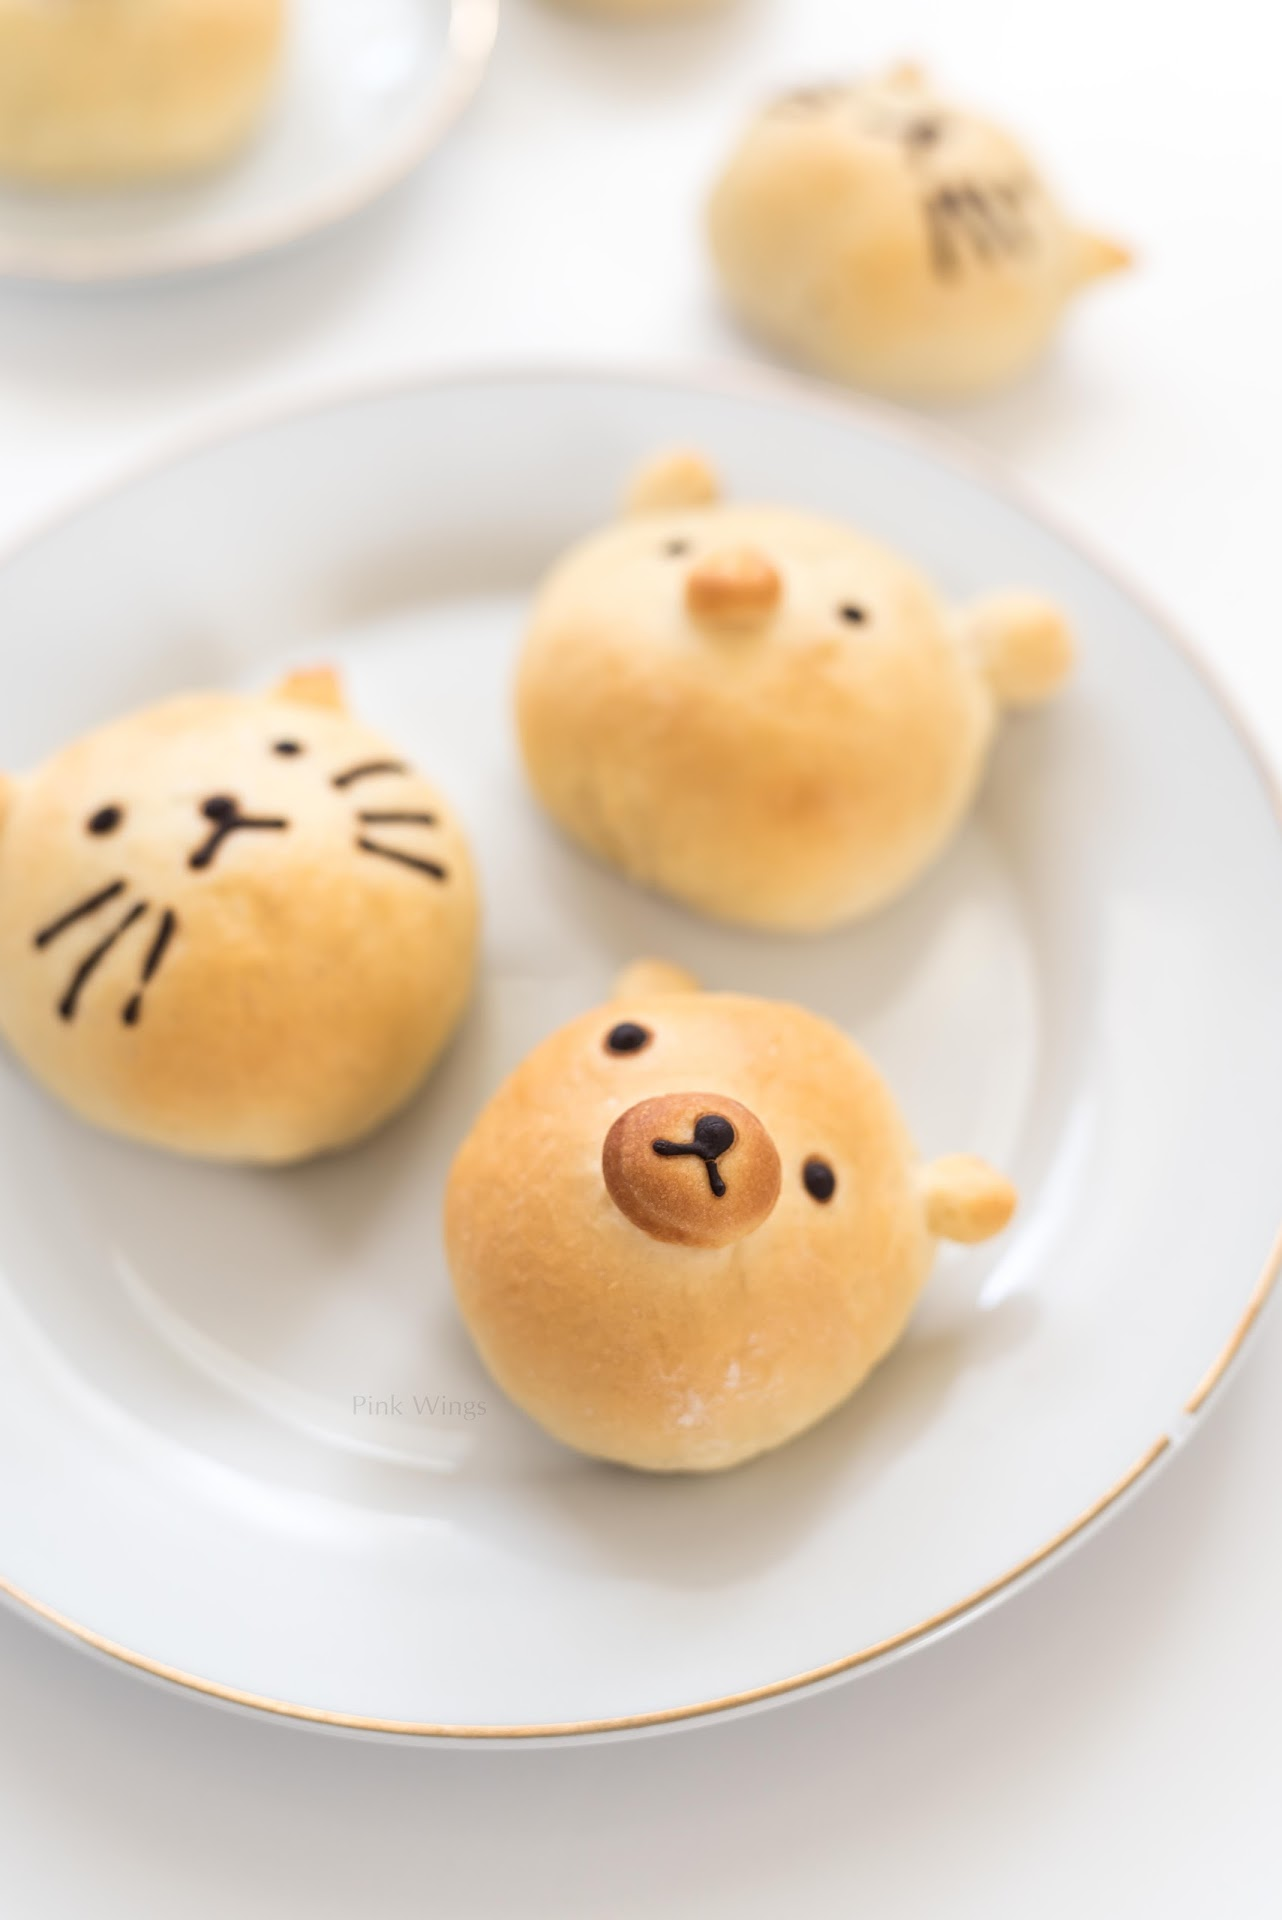 bear themed party, cat theme, pig theme, party ideas, kids birthday party, kawaii food recipes, cute food recipes, animal bread, food shaped like animals,